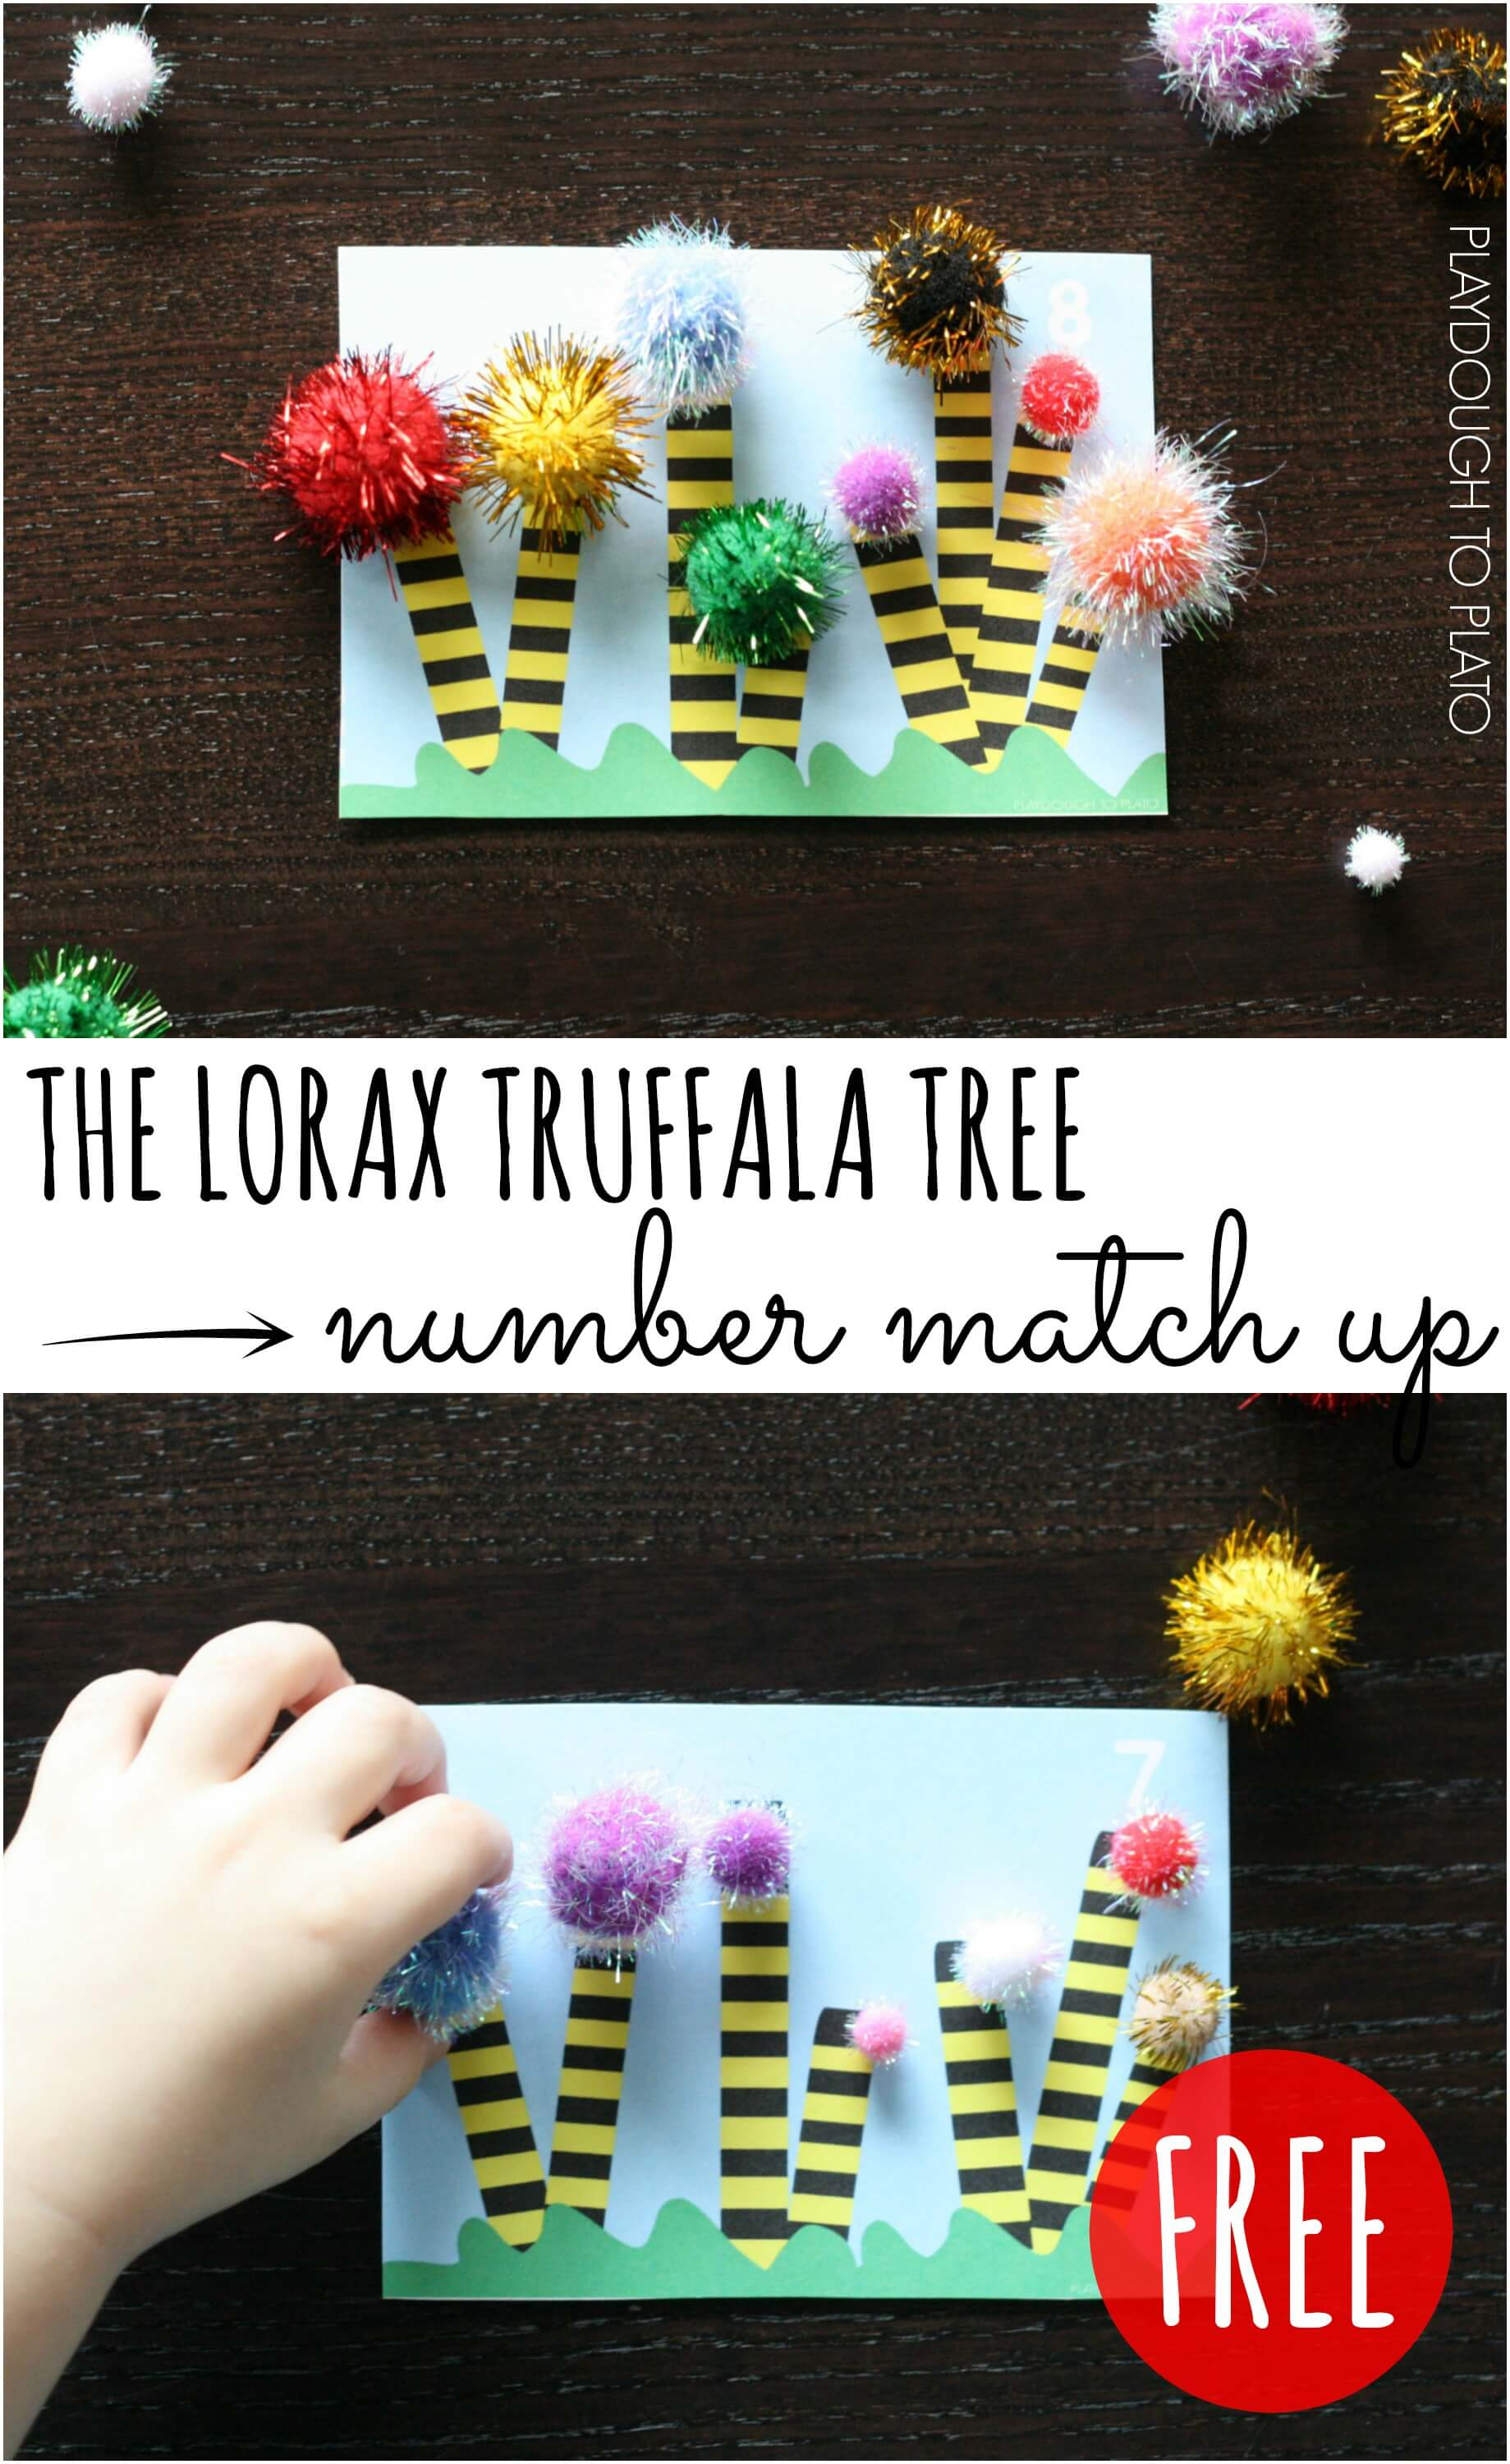 The Lorax Number Match Up